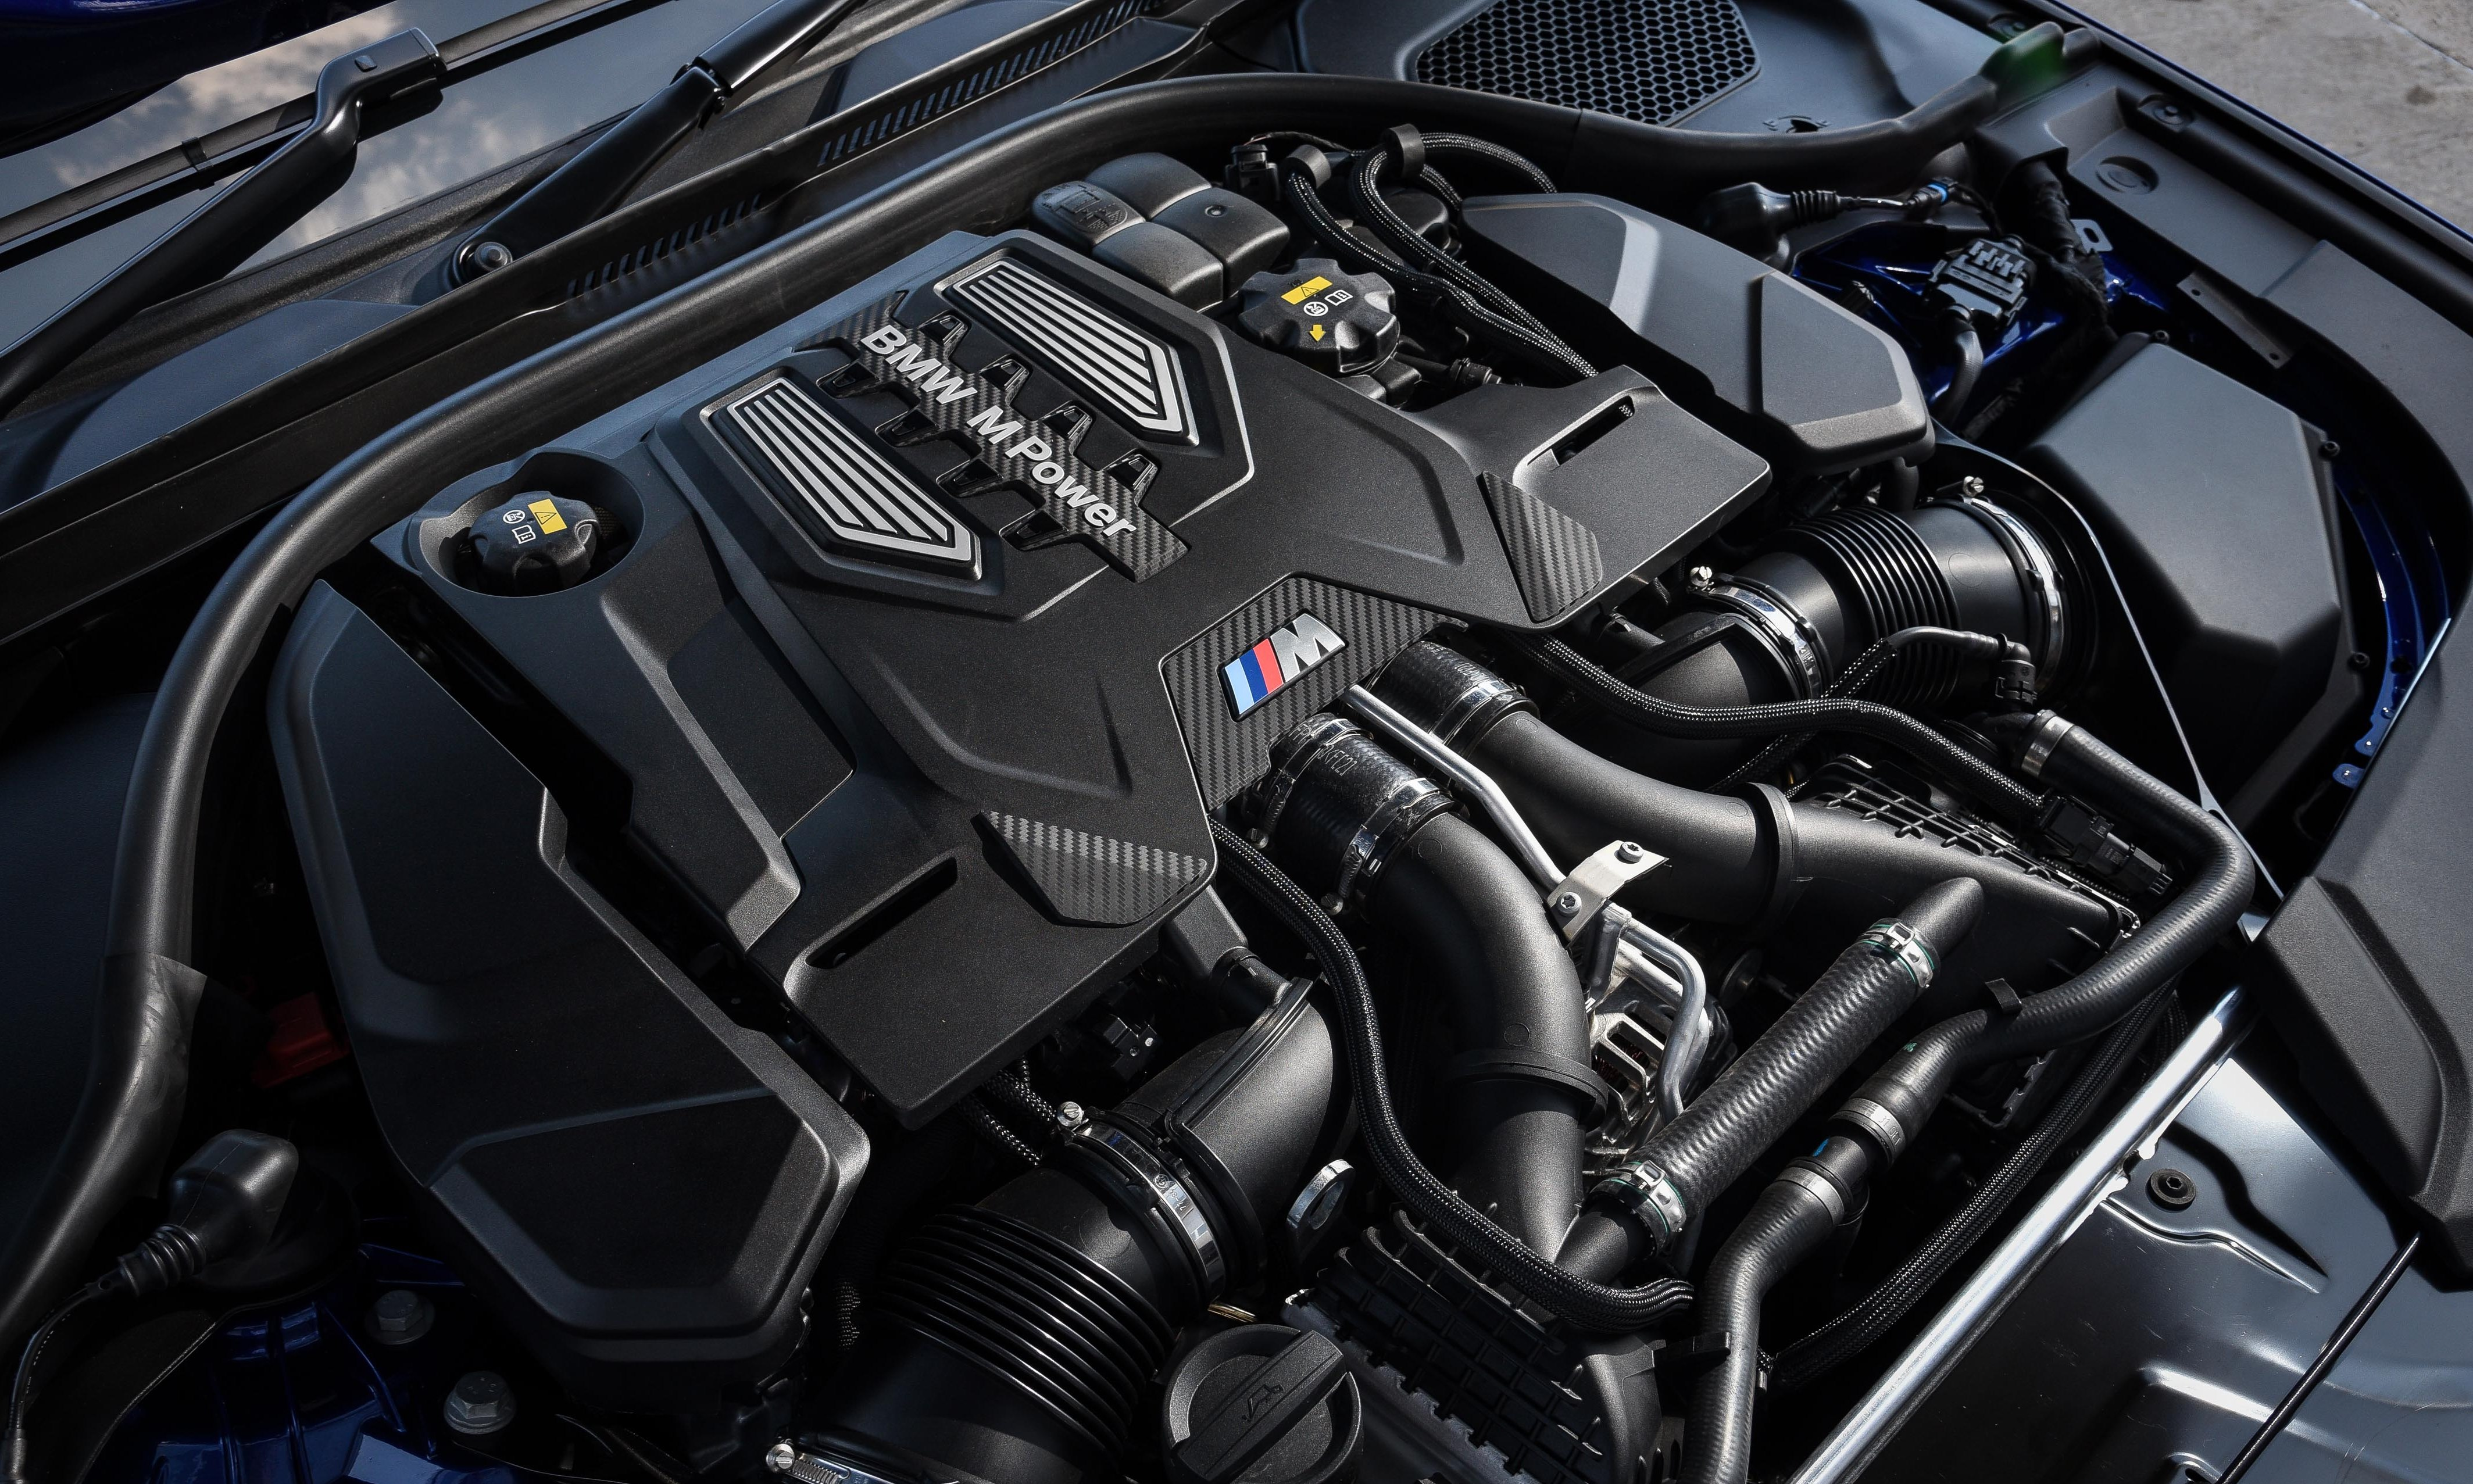 The 4.4-litre twin-turbo V8 is a carry-over unit